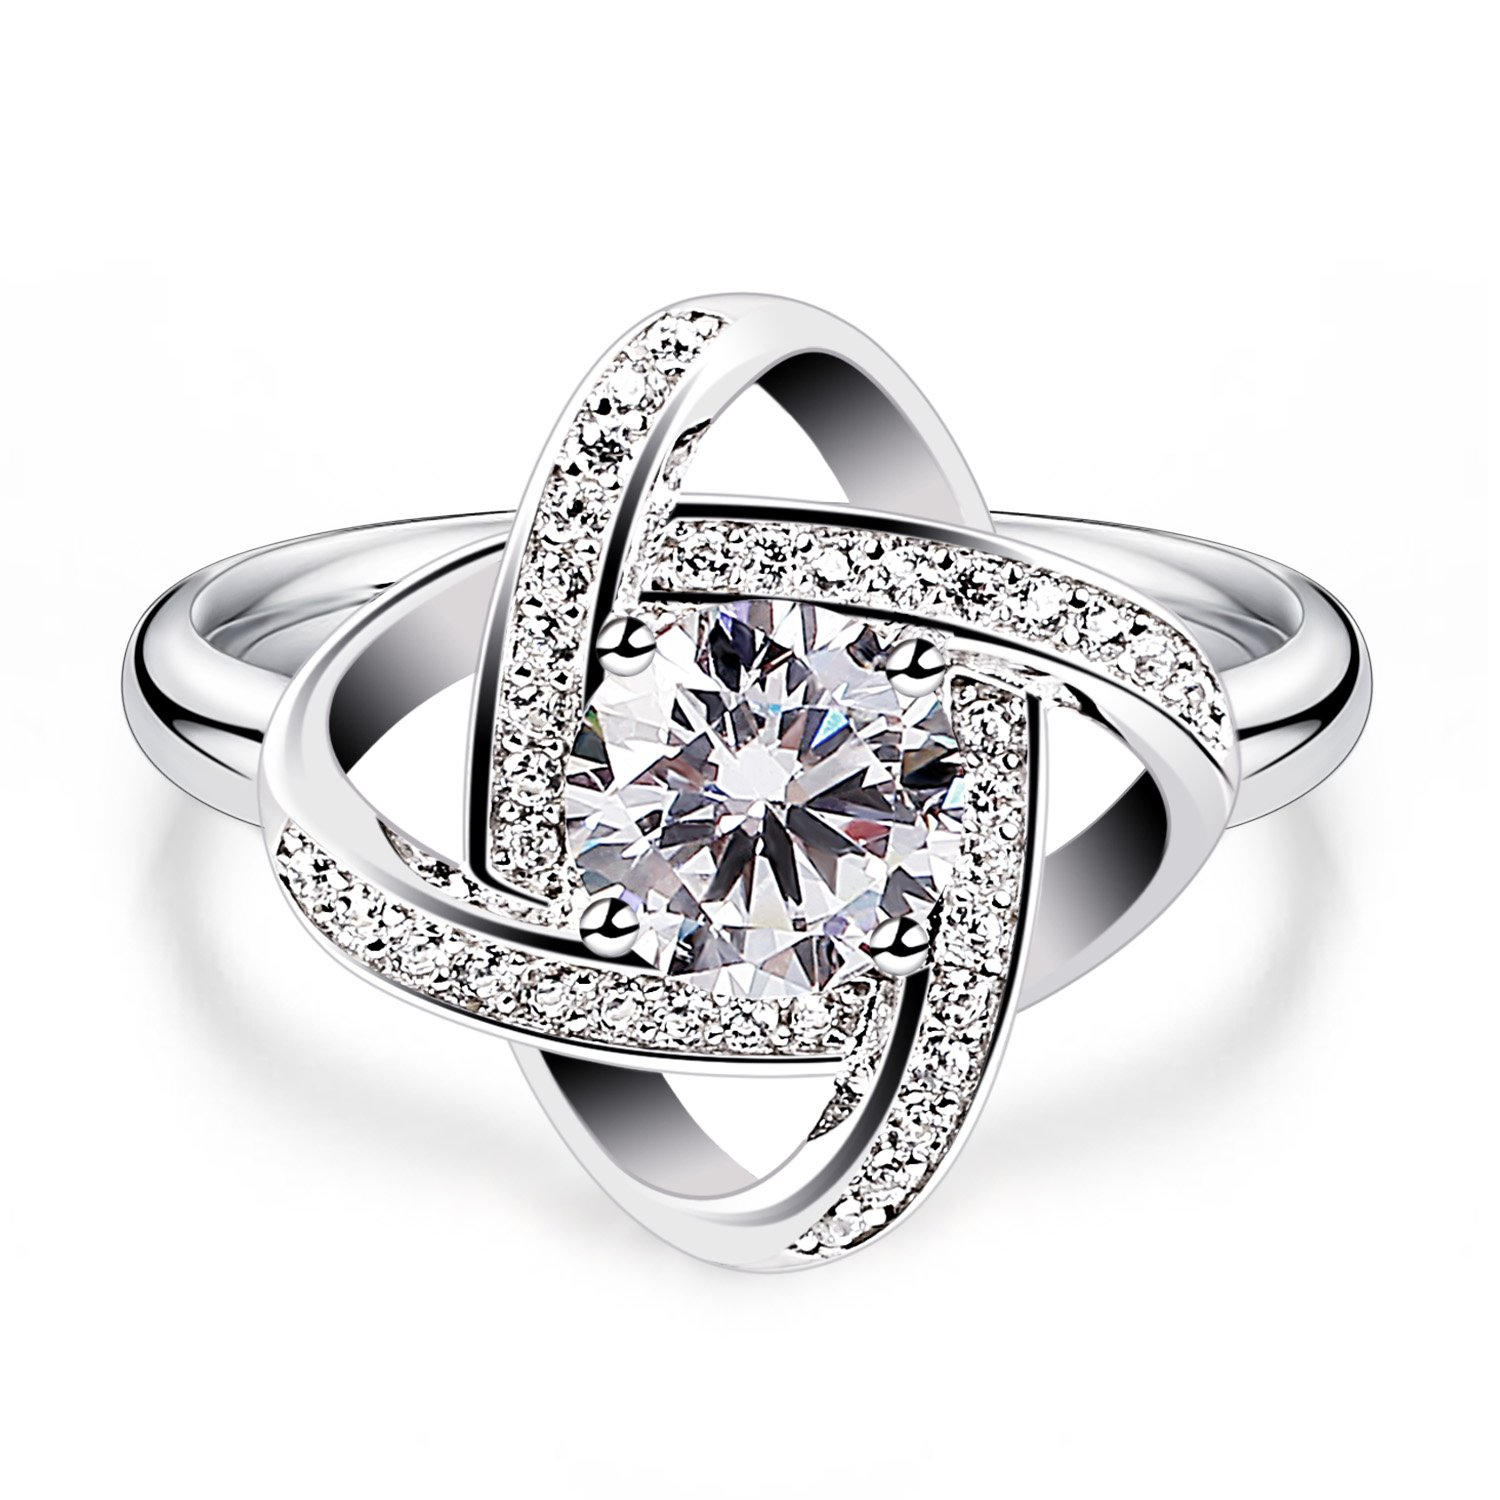 B.Catcher Women's Ring Adjustable 925 Sterling Silver Cubic Zirconia Valentine's Gift for Her